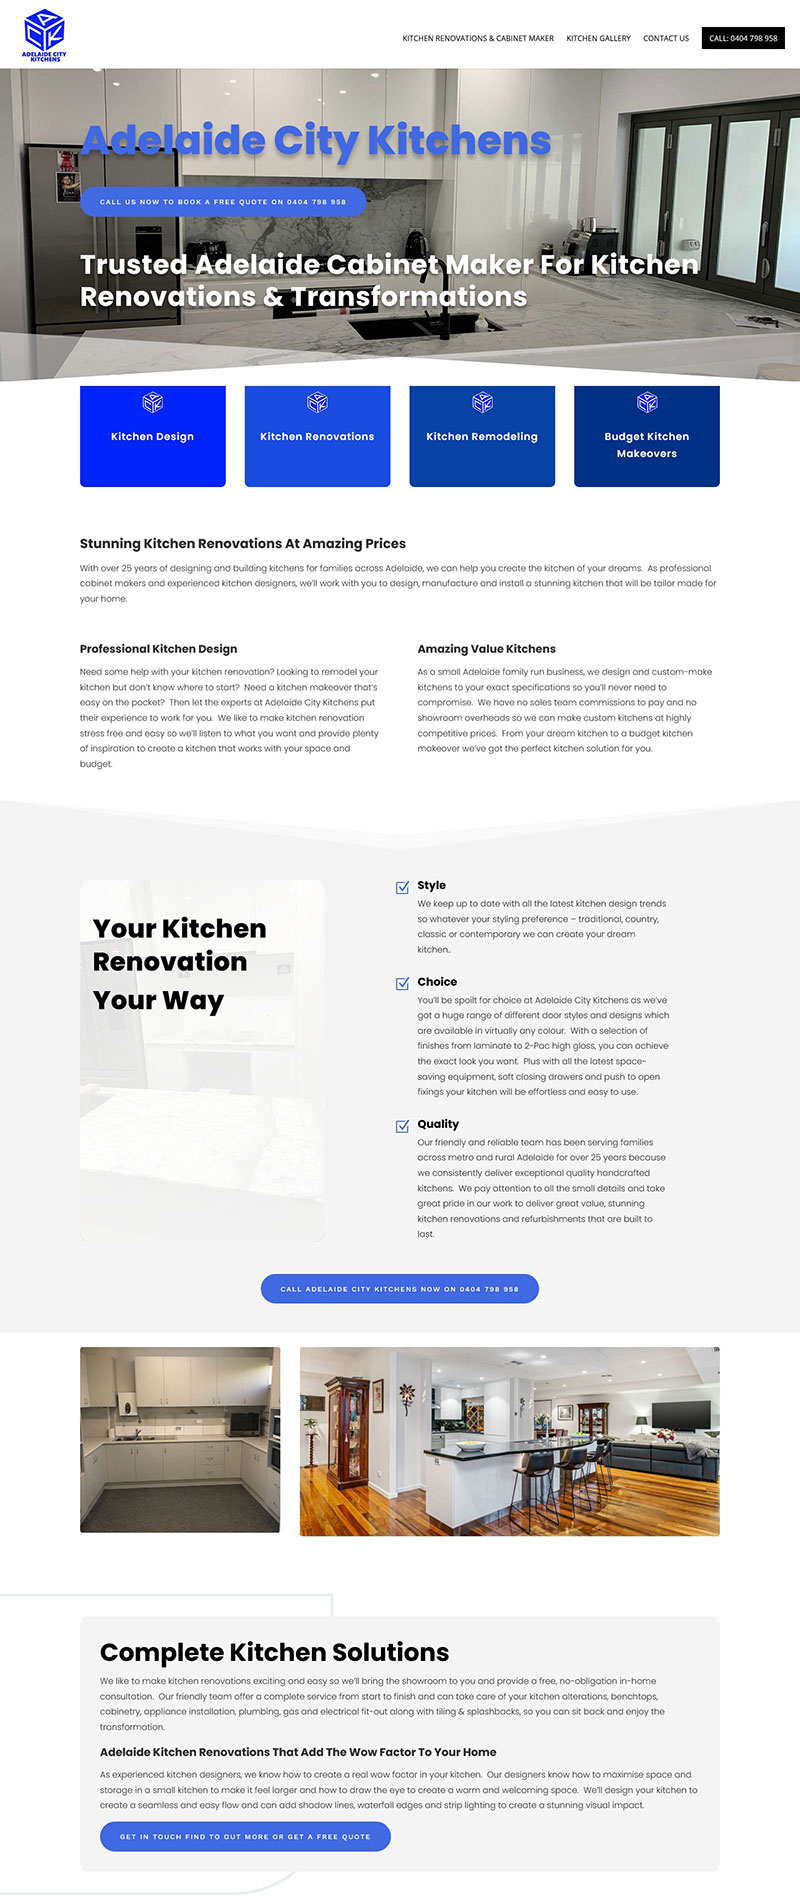 kitchen renovation business in adelaide